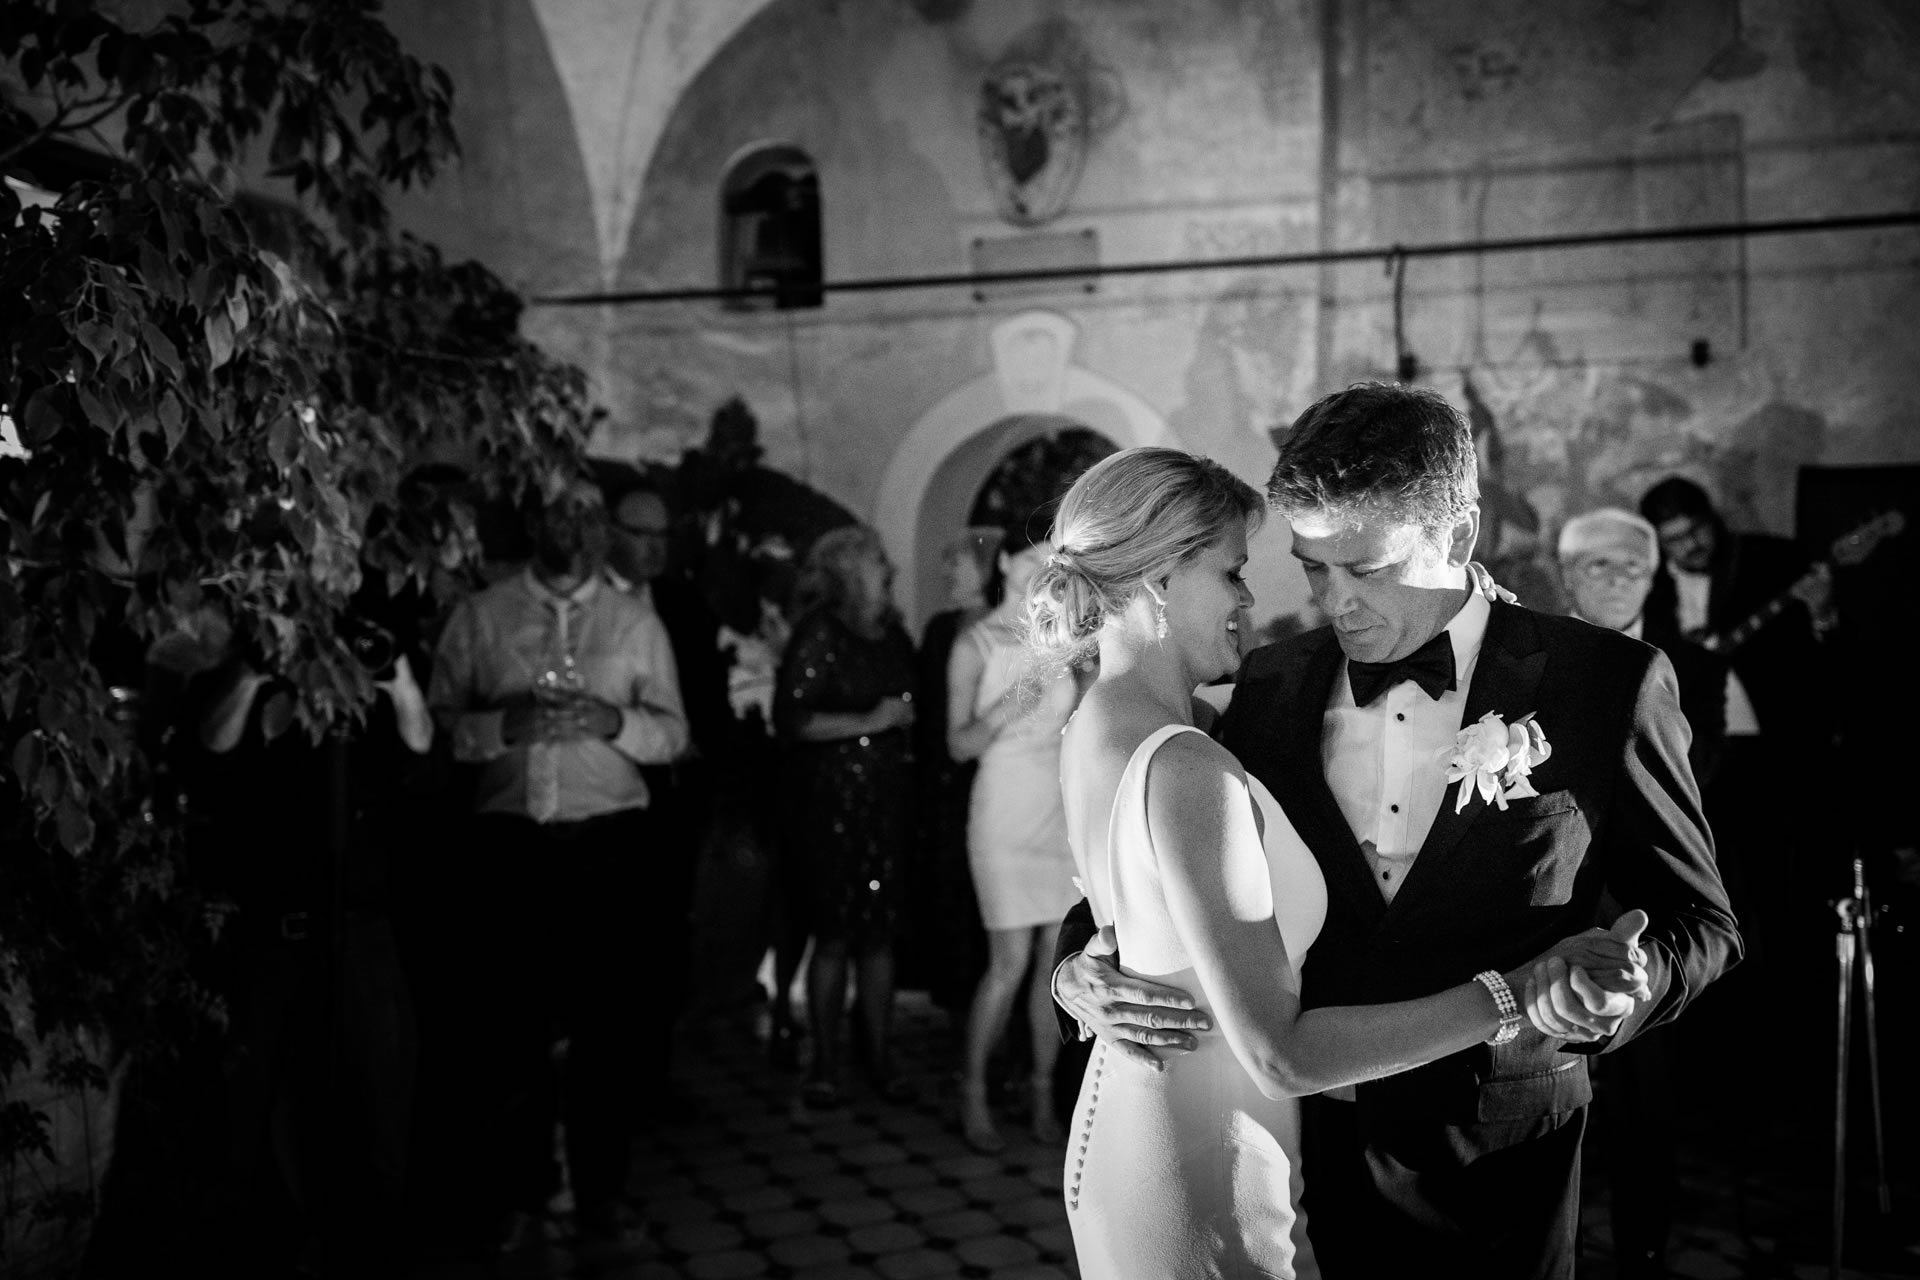 First Dance - 59 :: Wedding in Positano. Sea and love :: Luxury wedding photography - 58 :: First Dance - 59